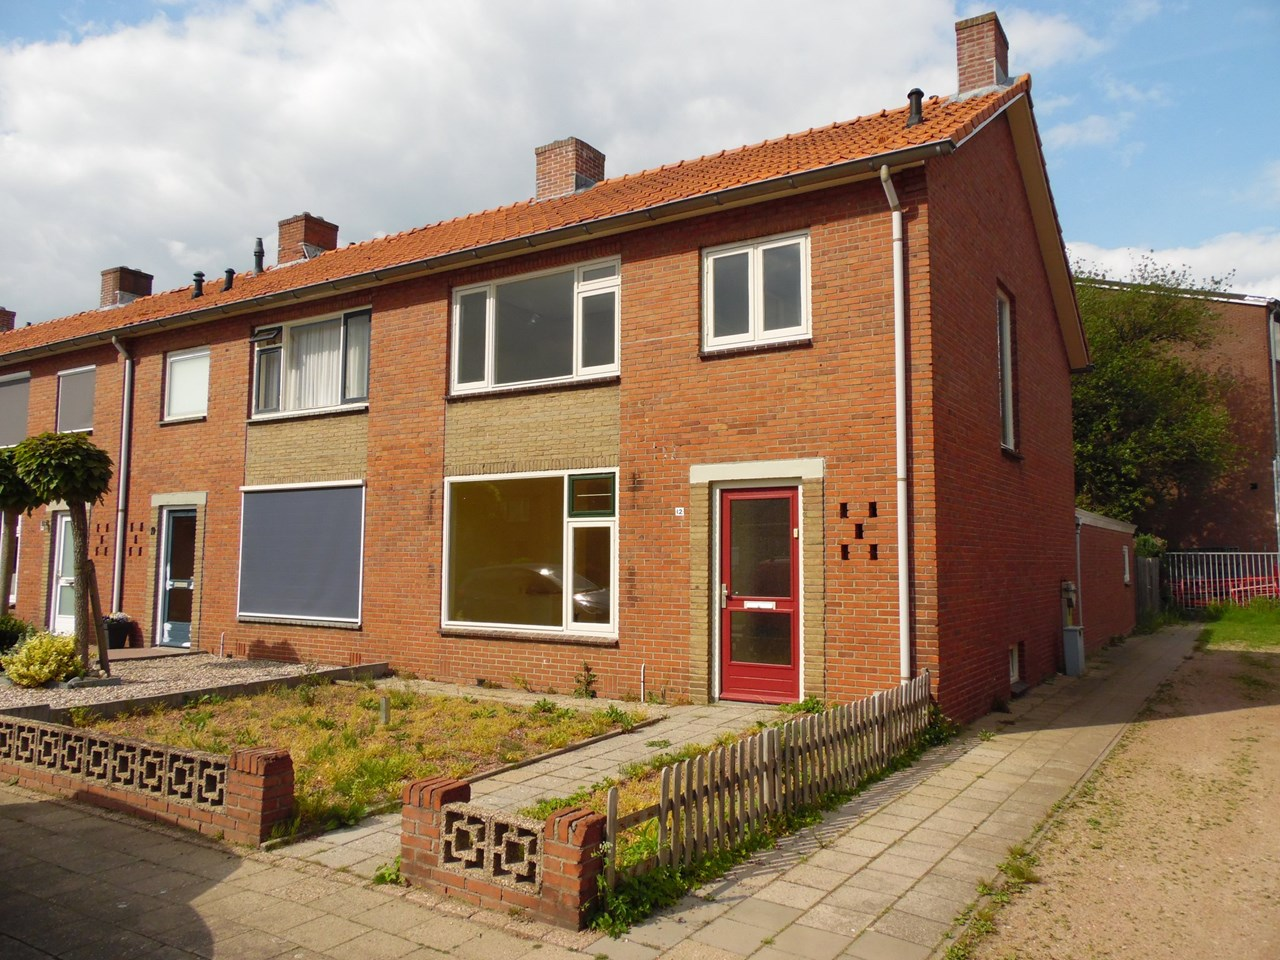 Crocusstraat